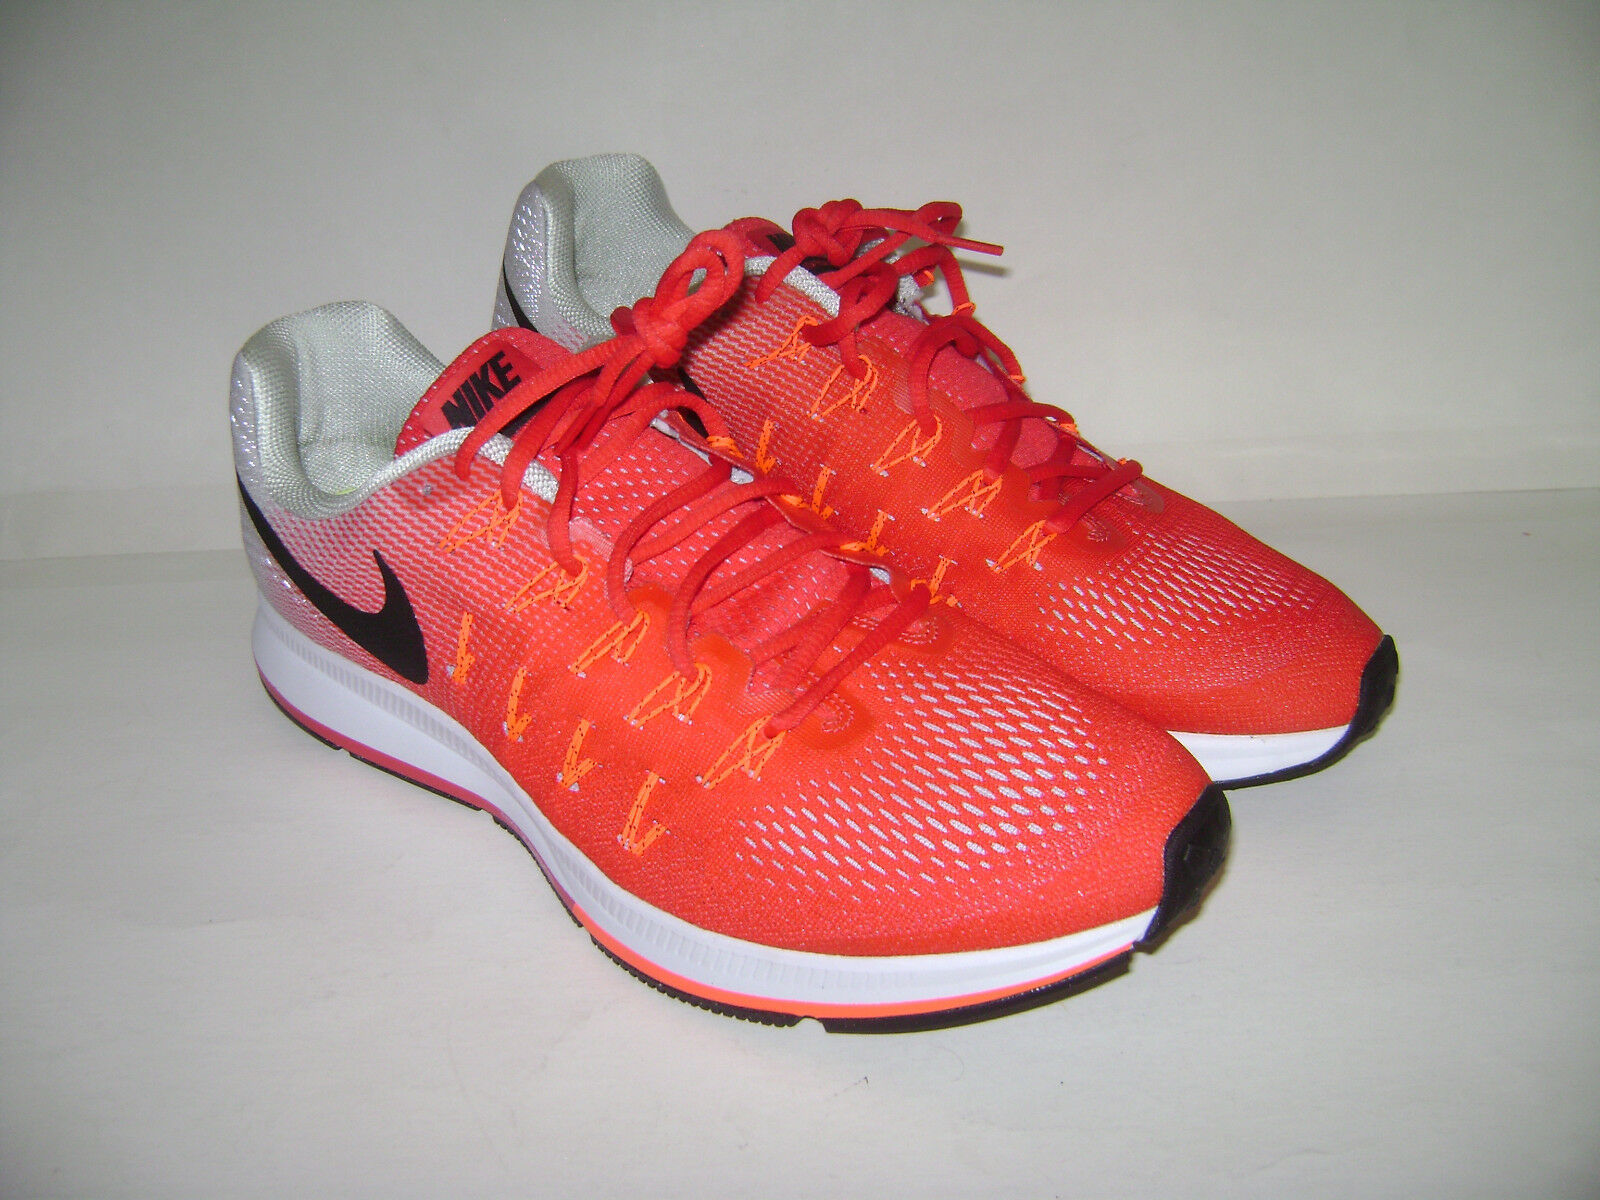 NEW NIKE AIR ZOOM PEGASUS 33 RUNNING SHOES ACTION RED SNEAKERS Sz 14 831352-600